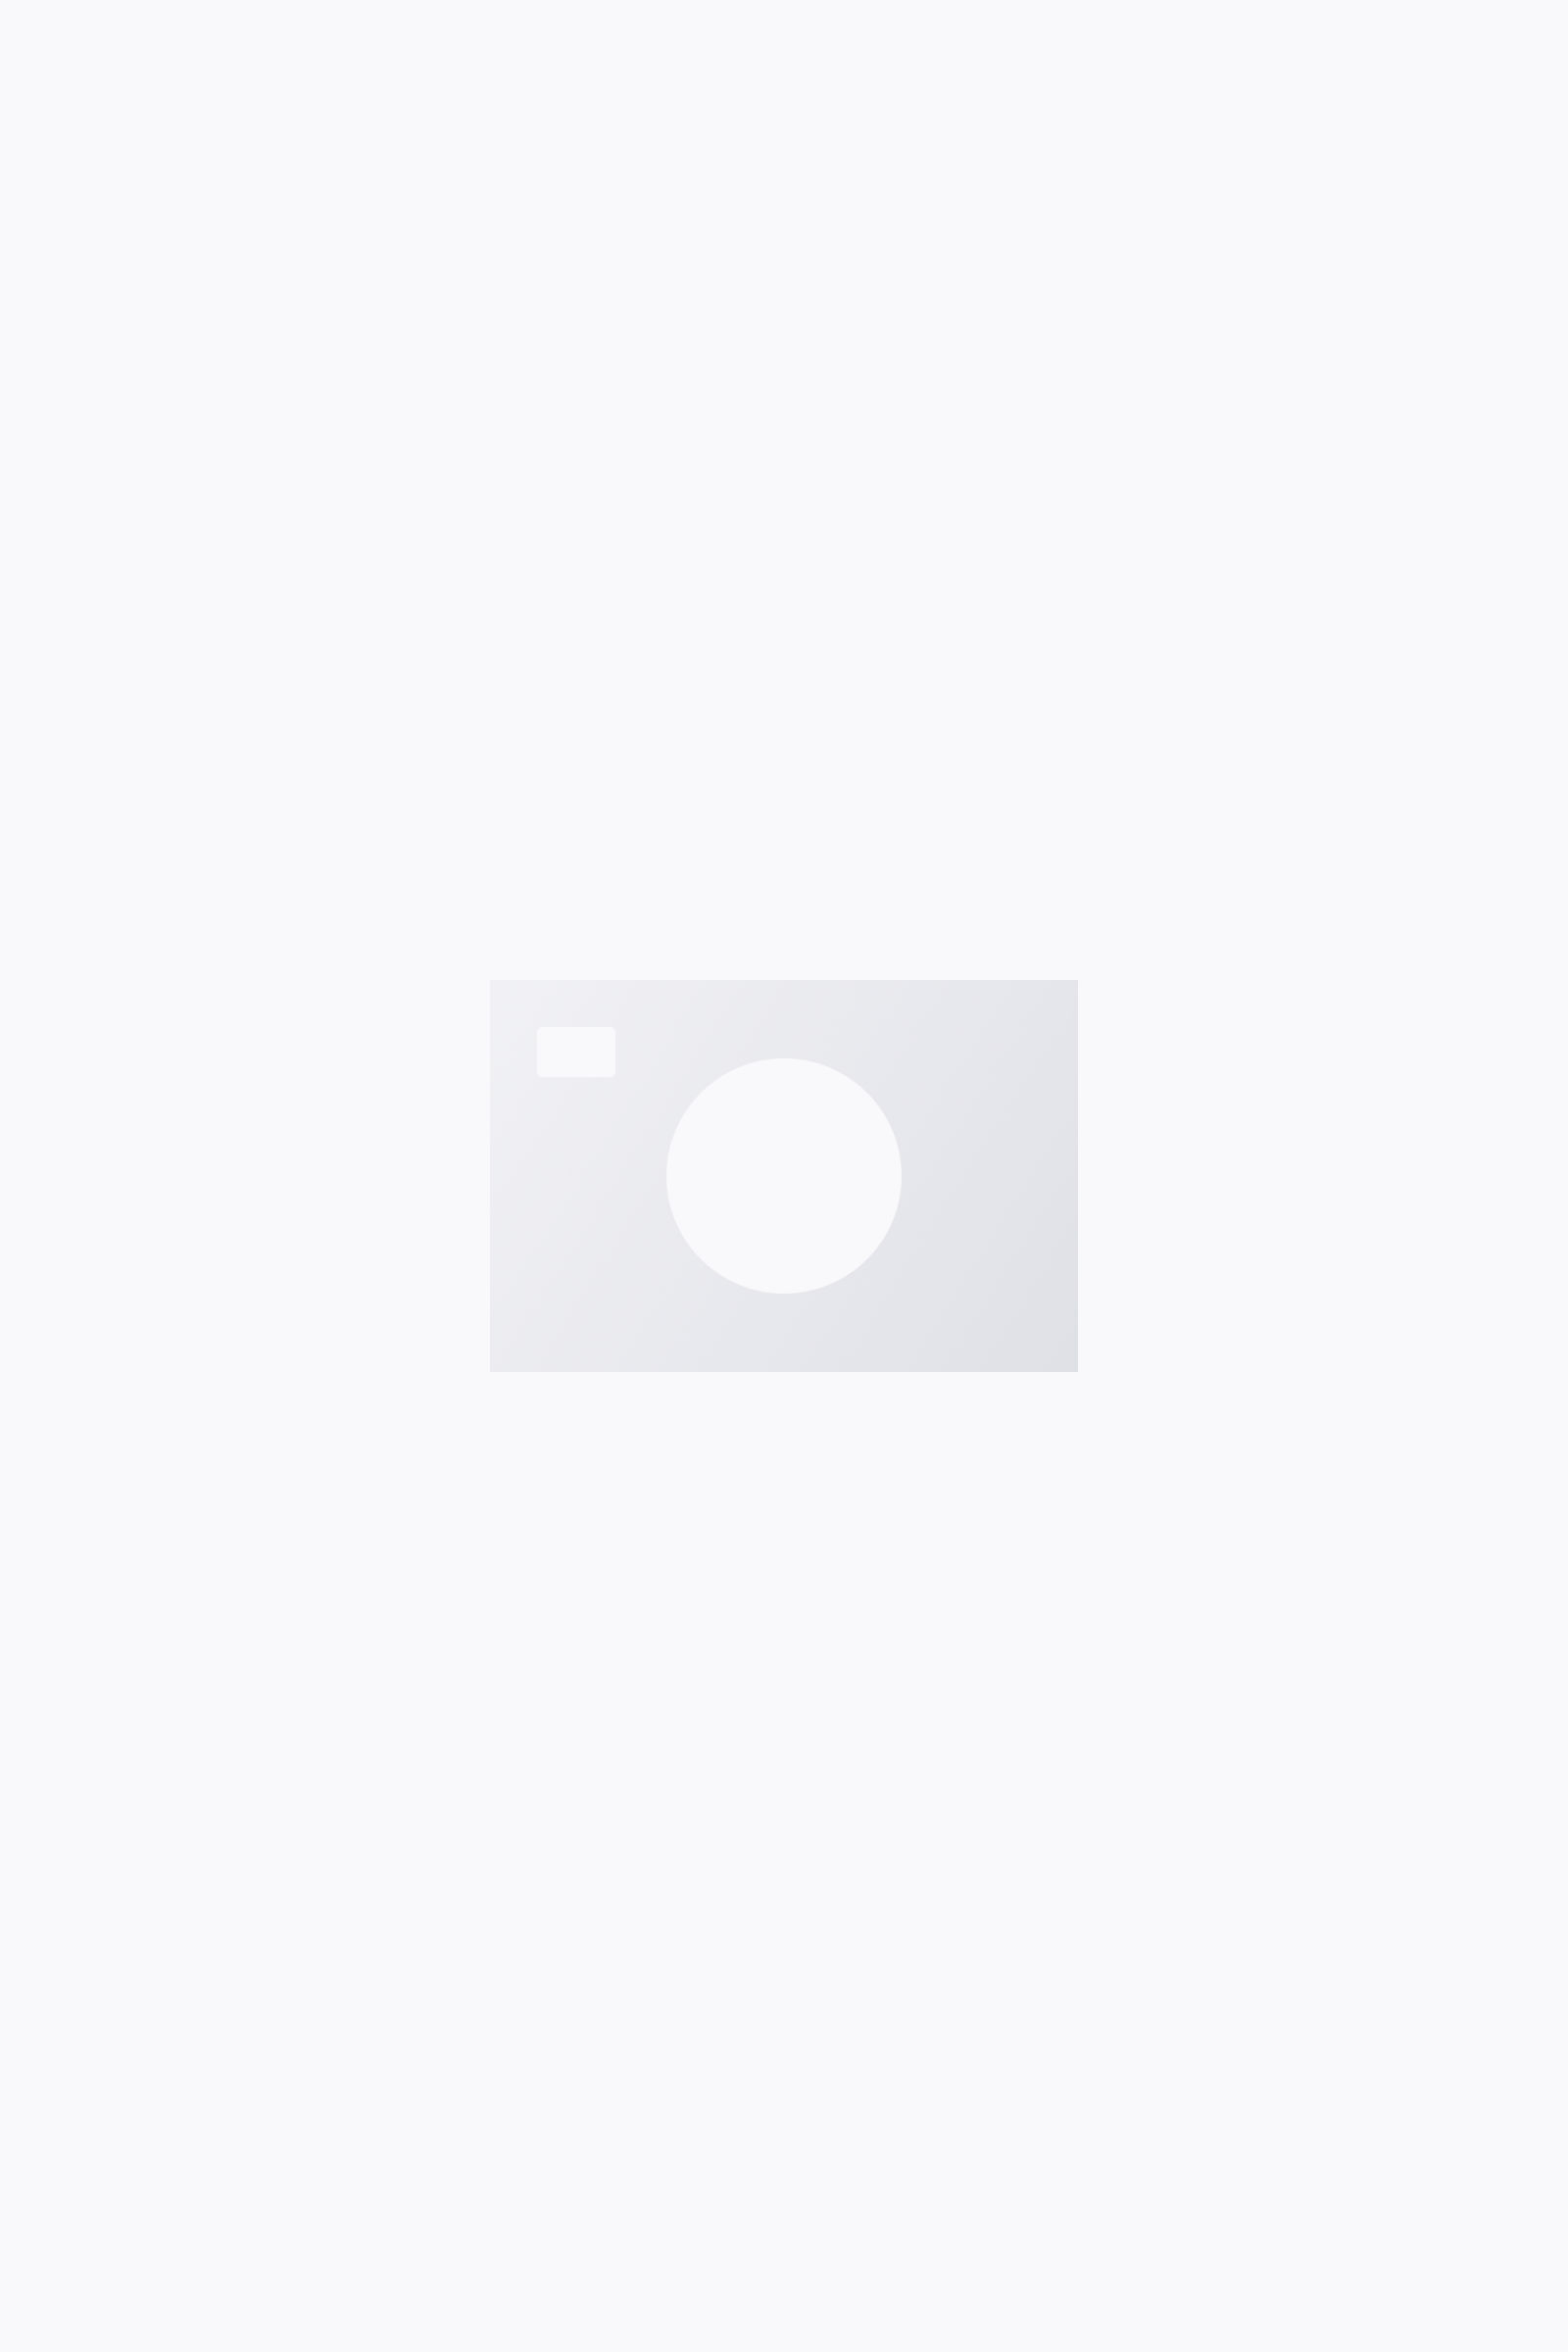 COS HOODED CARDIGAN,white